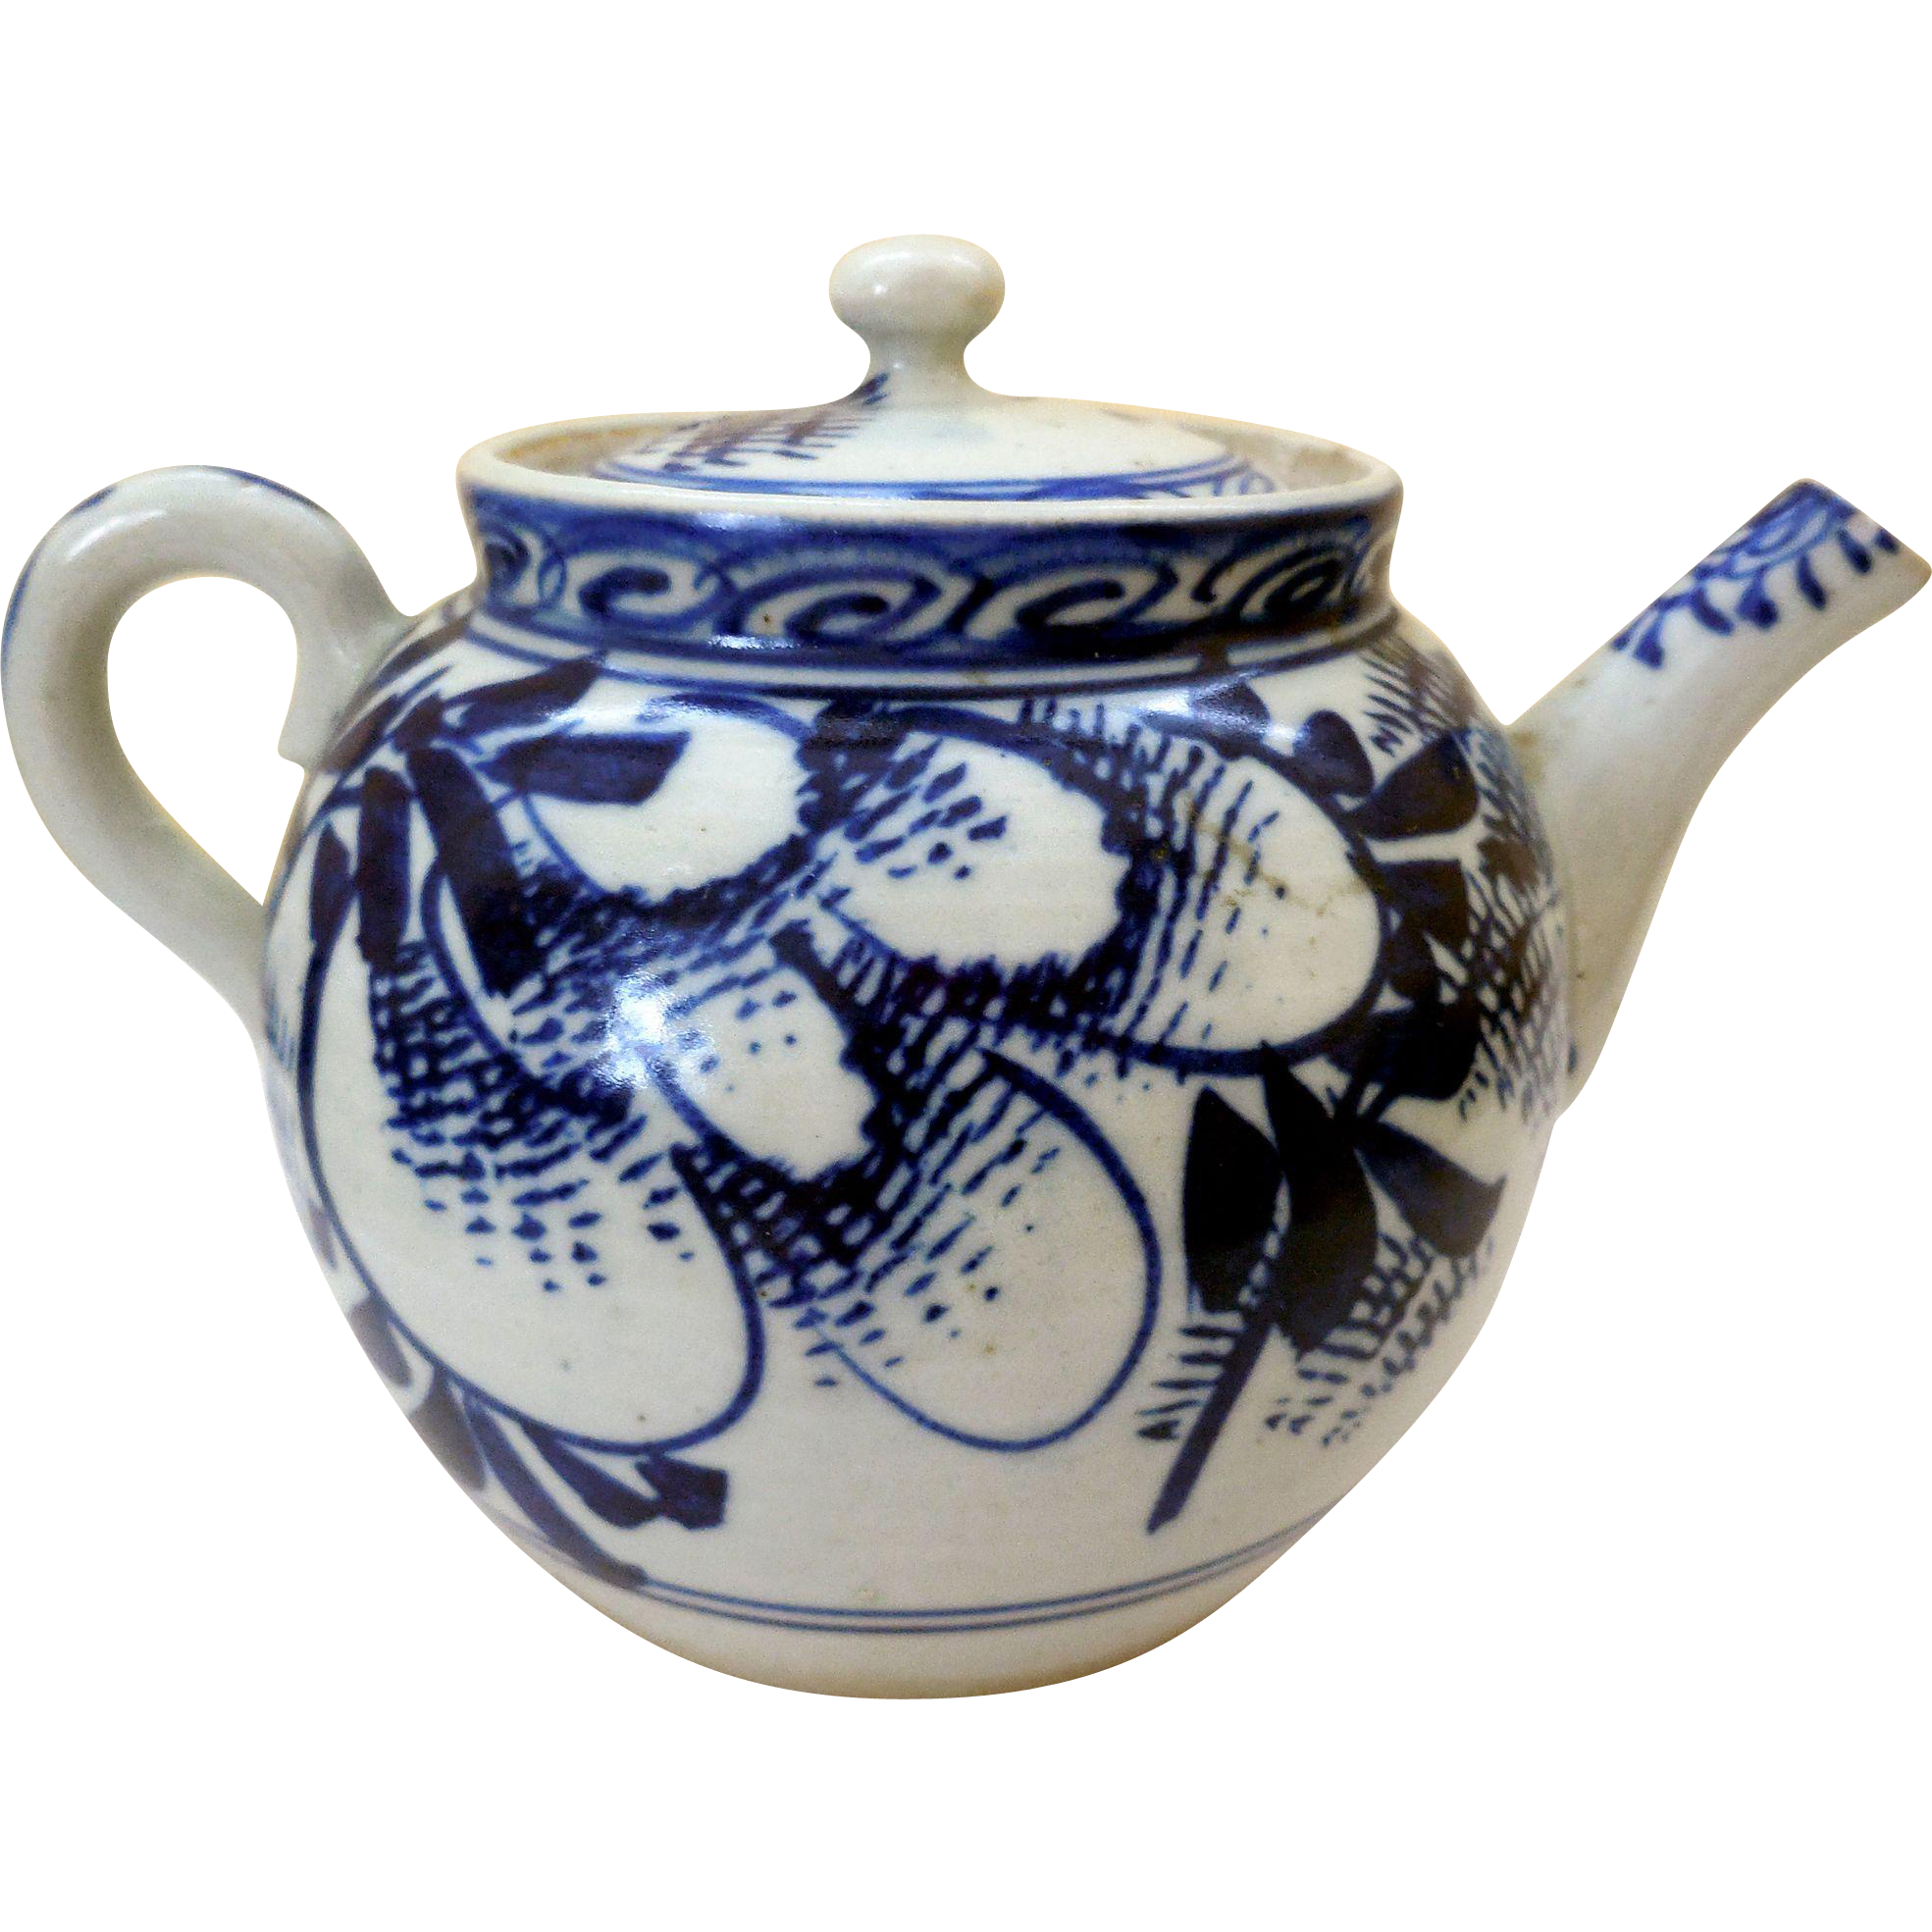 Kettle drawing vintage. Th century blue